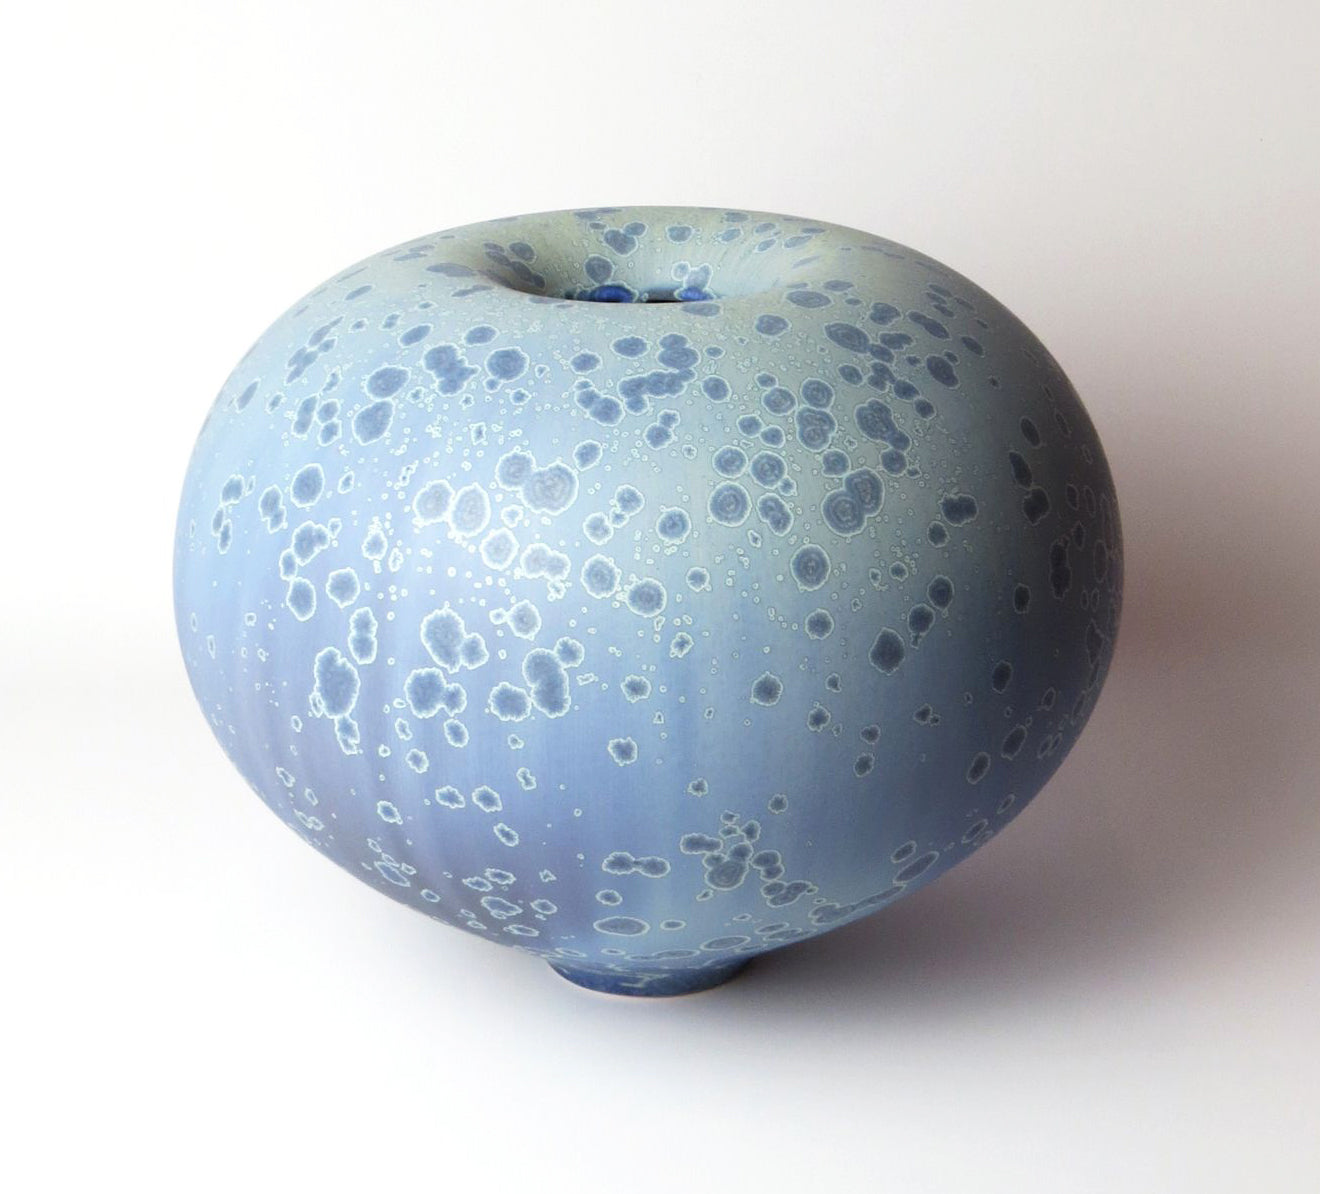 Glaze Chemistry and Crystaline Glazes w/Matt Katz, June 28-30, 11a-6p